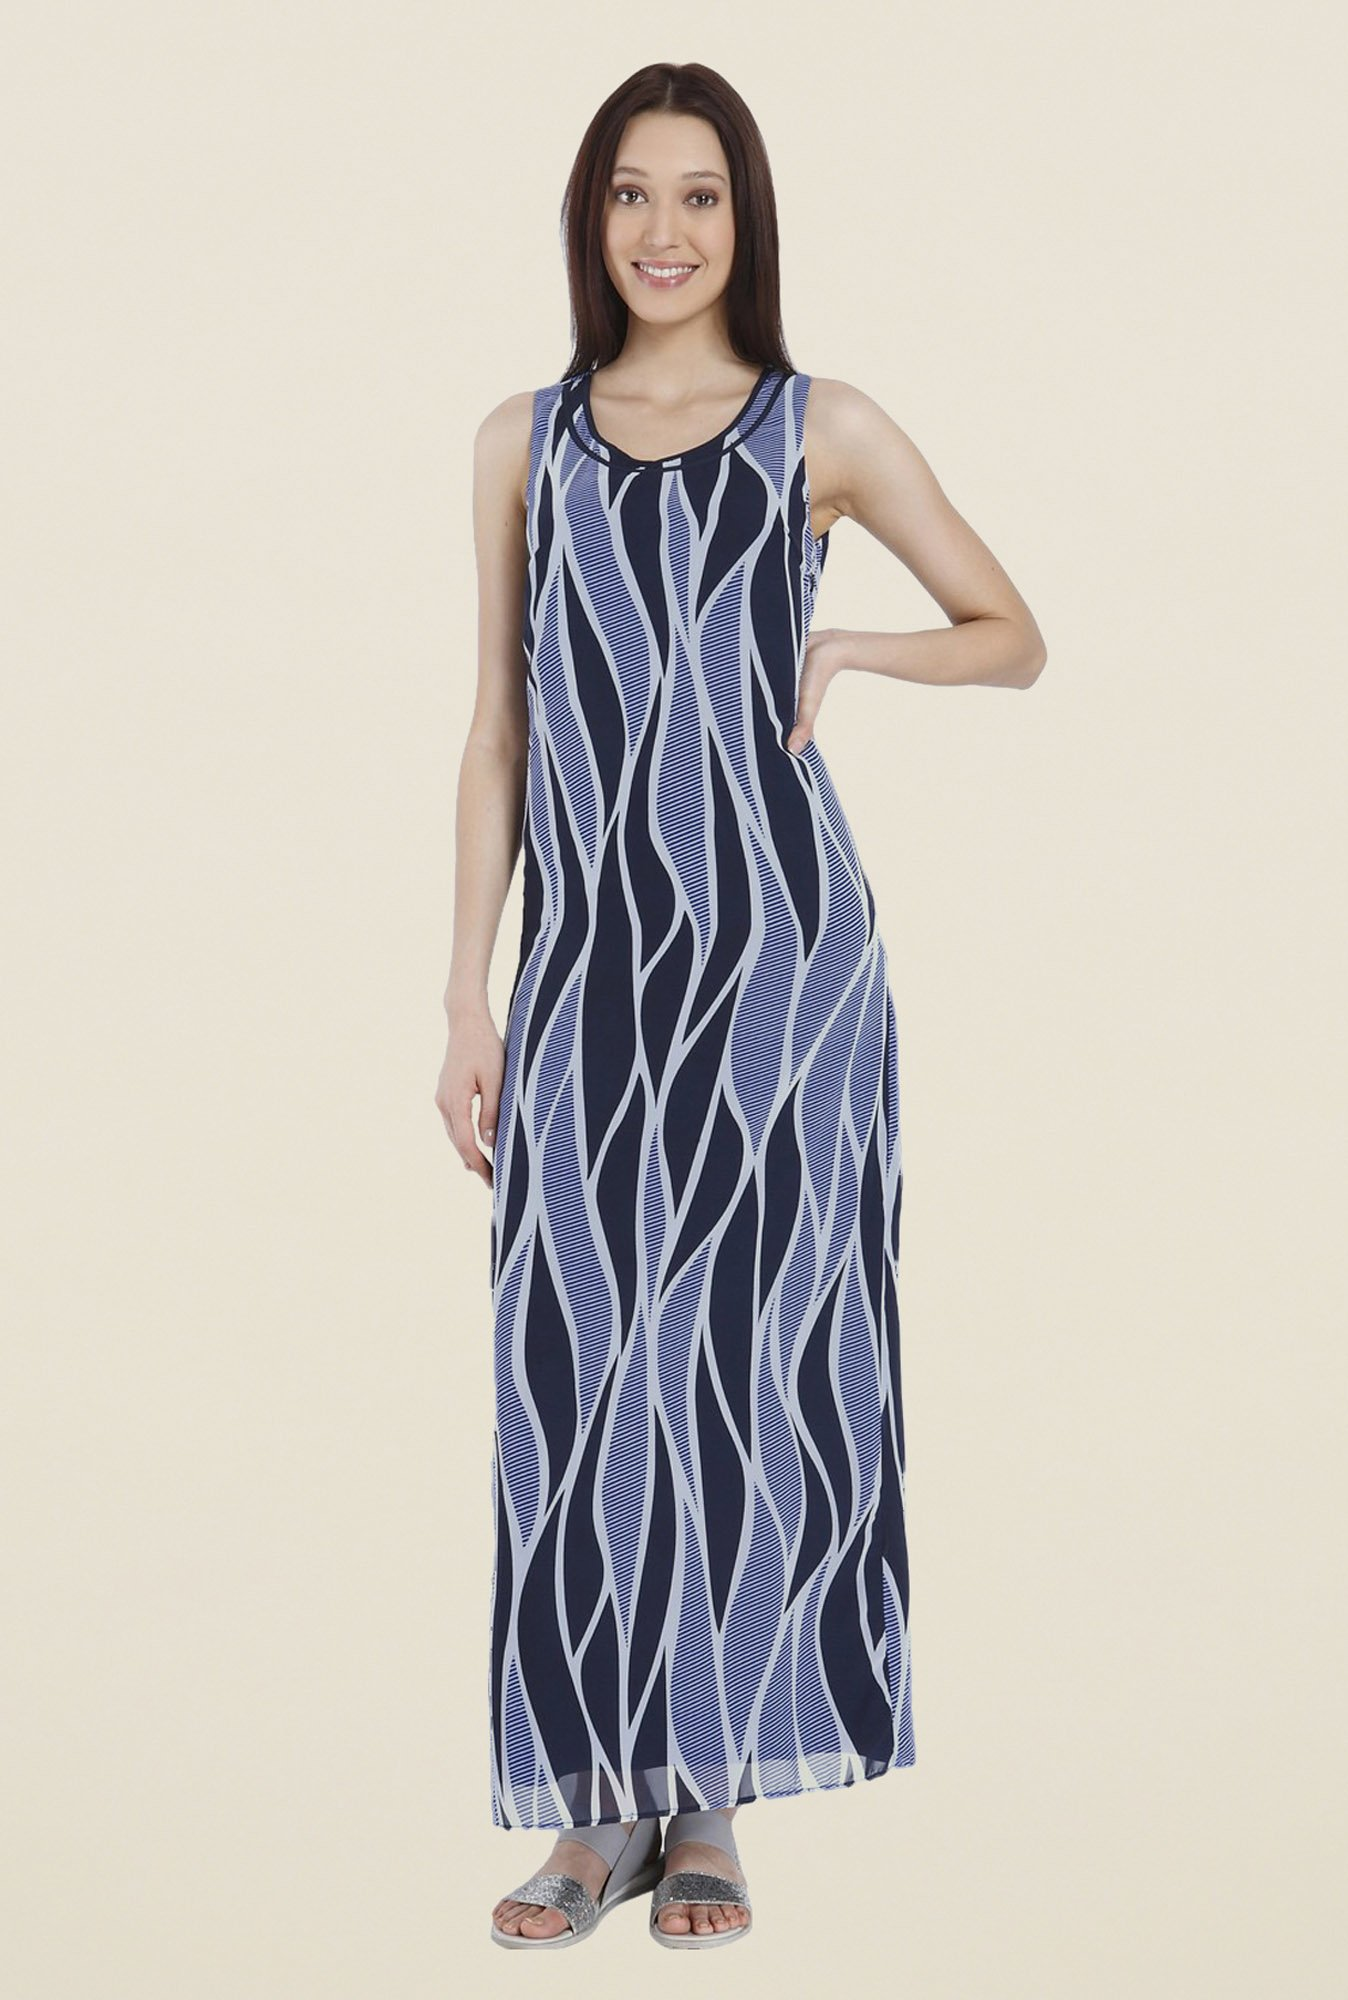 Vero Moda Blue Maxi Dress